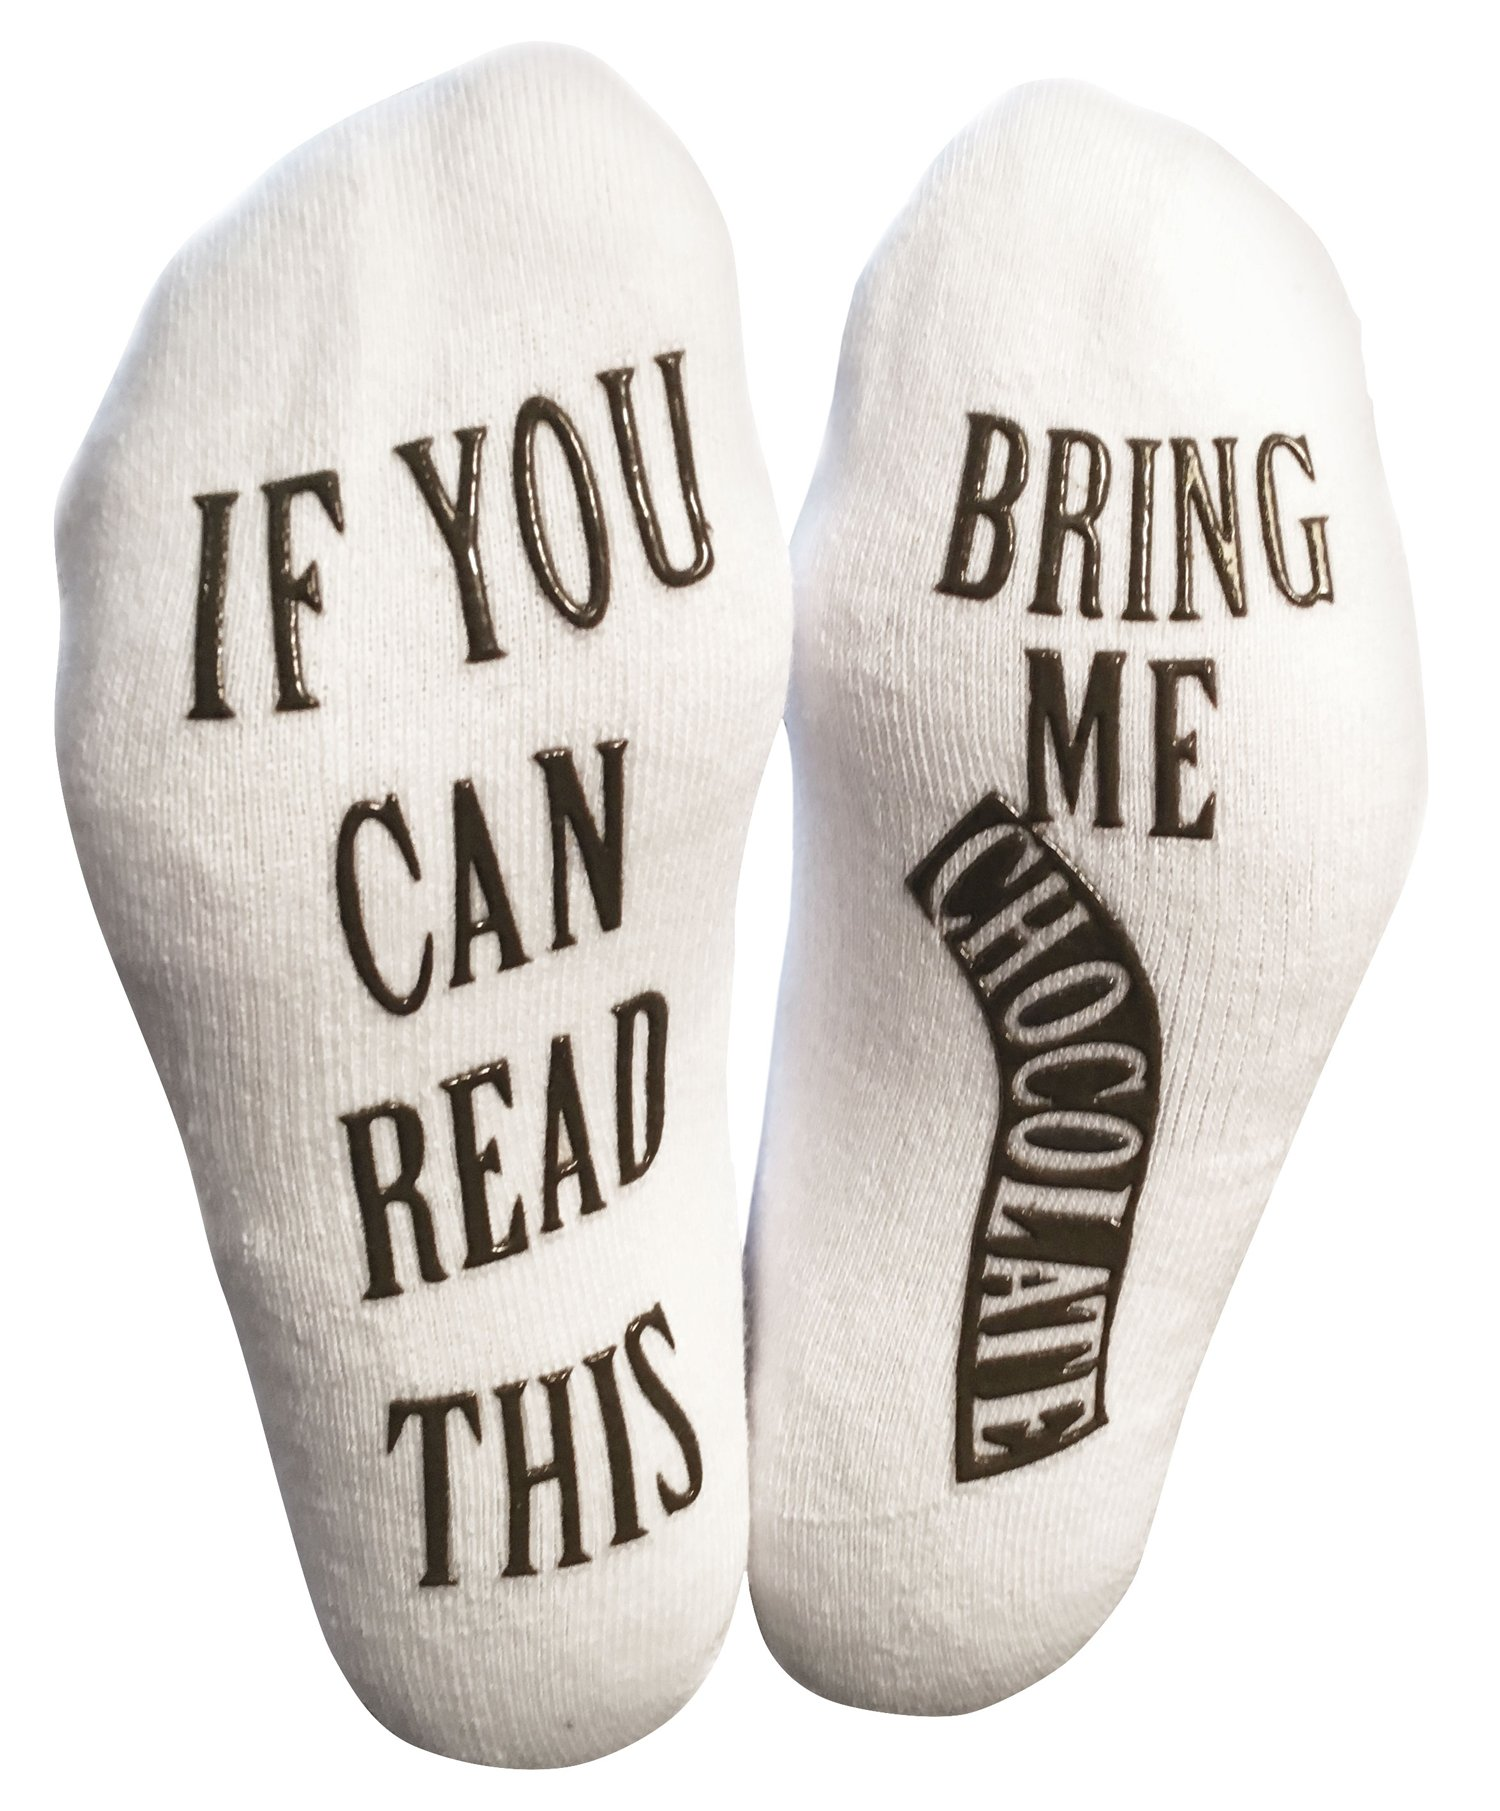 """If You Can Read This Bring Me Chocolate"" Luxury Cotton Novelty Socks - Perfect Gift Idea for Chocolate Lovers, Funny Gag Gift for Wife, Husband and Kids - Best White Elephant Present"